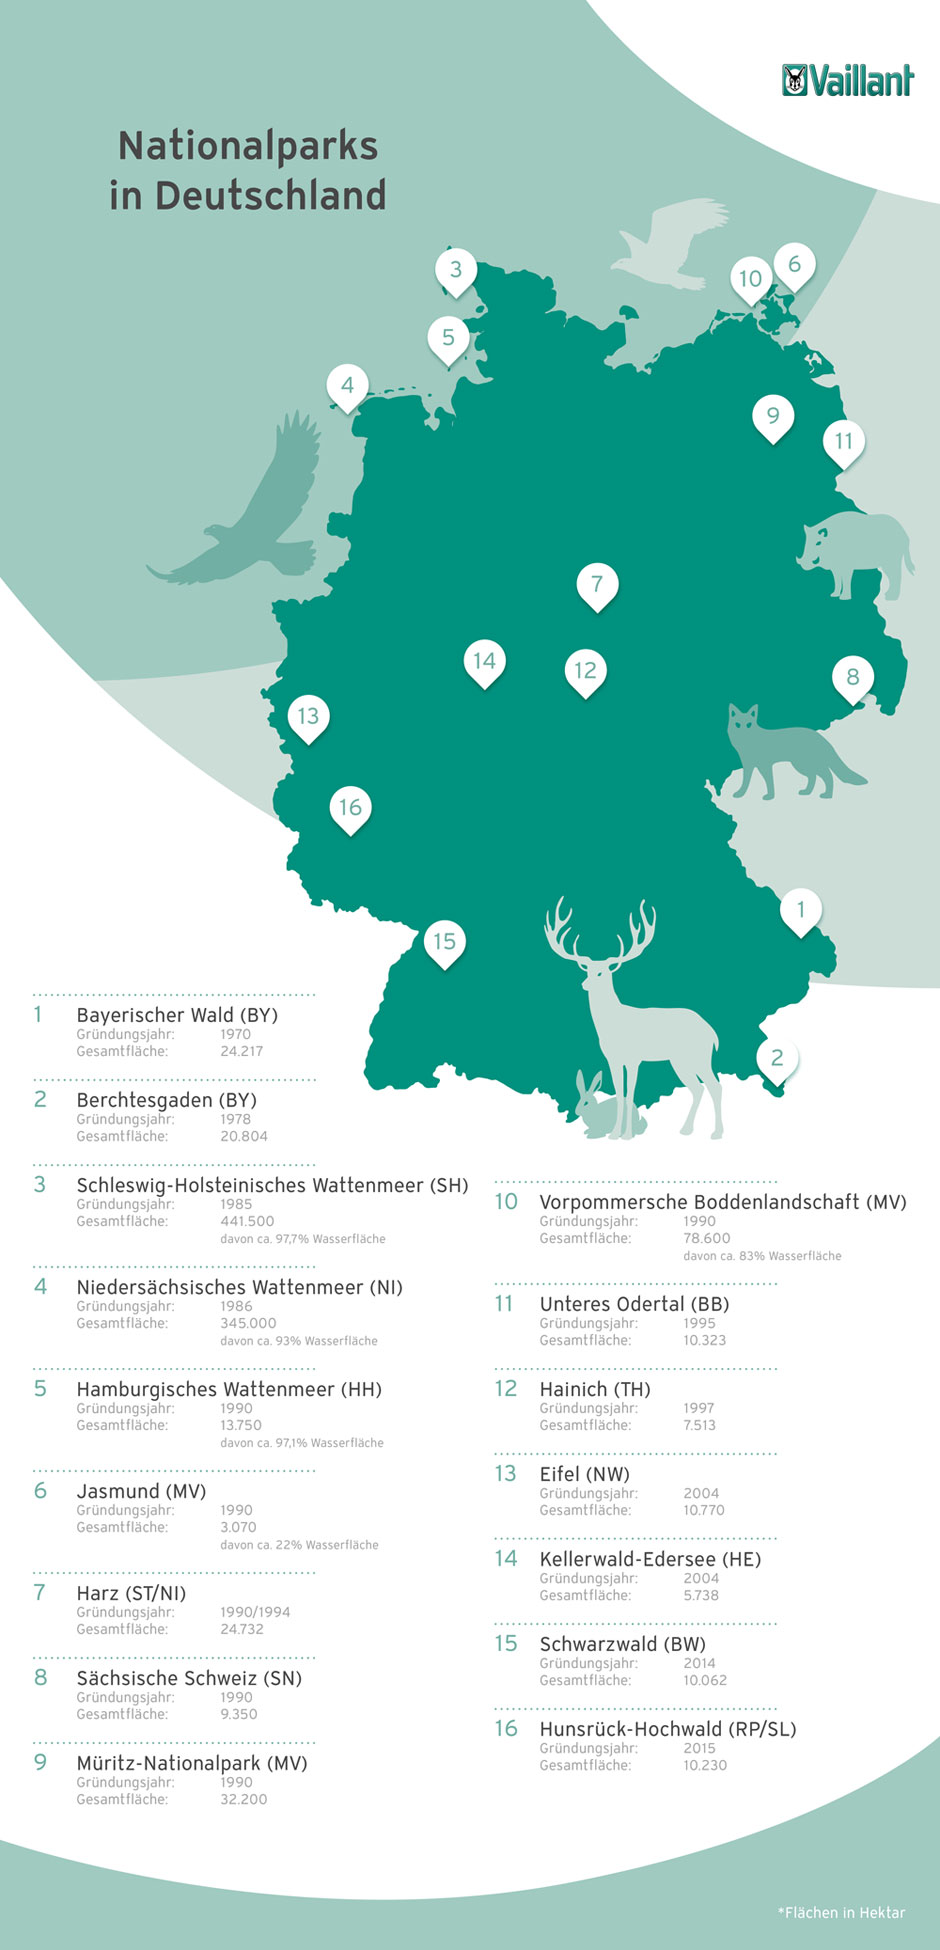 Deutschlands Nationalparks